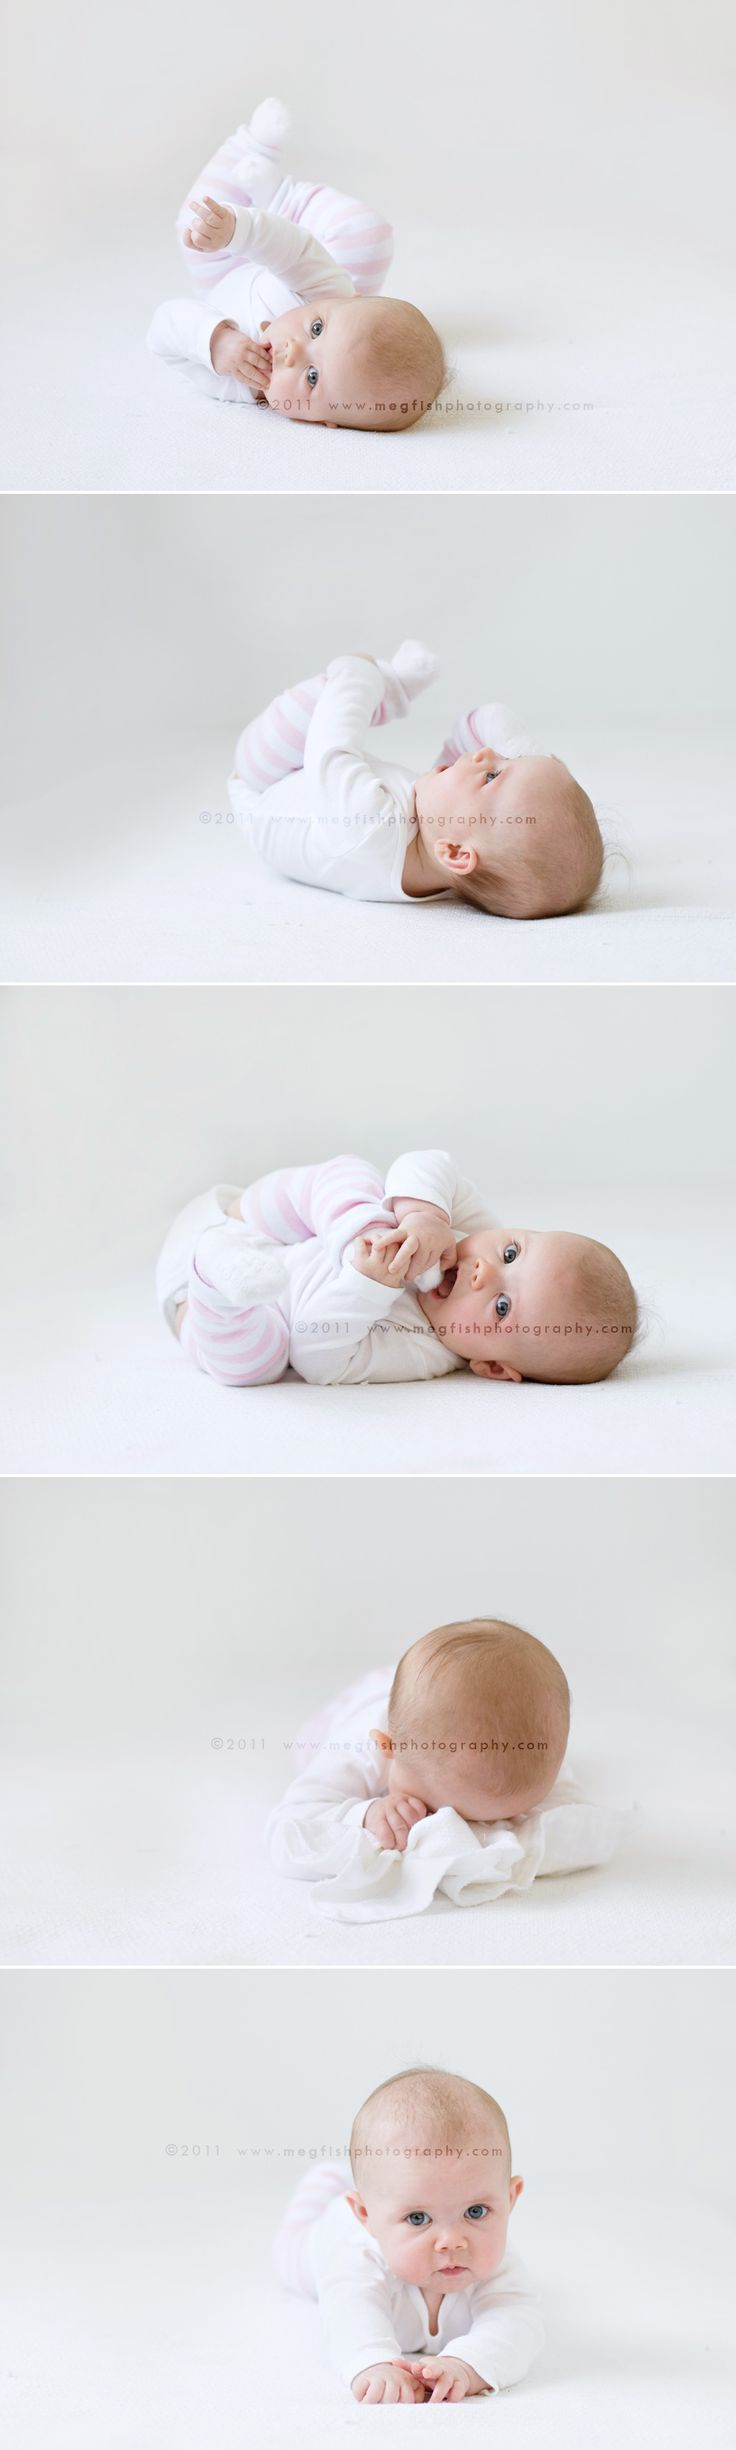 Rollie pollie. Cute for 4 or 5  month old who just learned to roll from back to front.